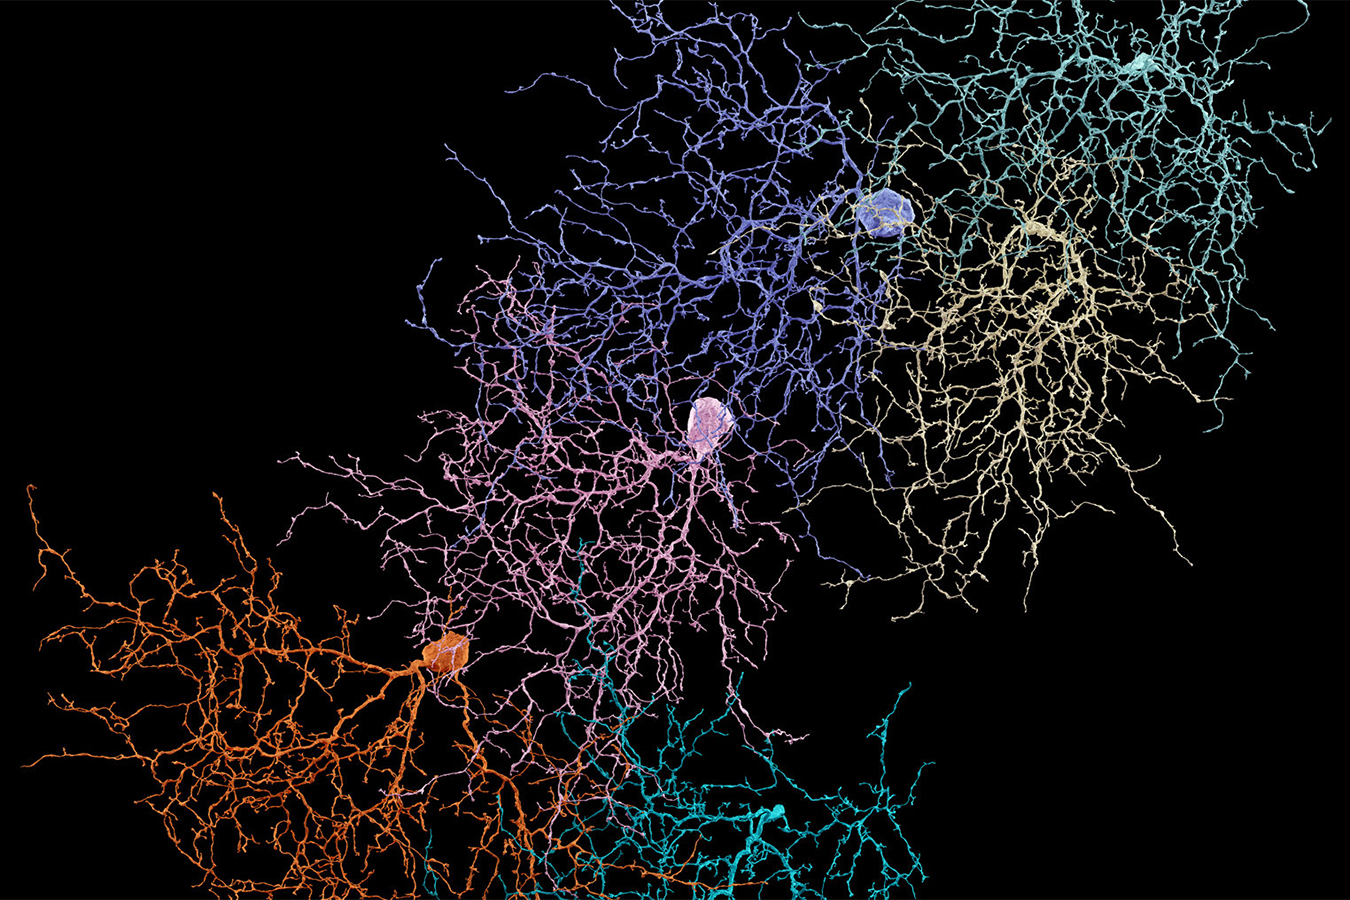 Several distinct neurons in a mouse retina that have been mapped by volunteers playing a game developed by Sebastian Seung. {Credit Photo illustration by Danny Jones. Original images from EyeWire.}